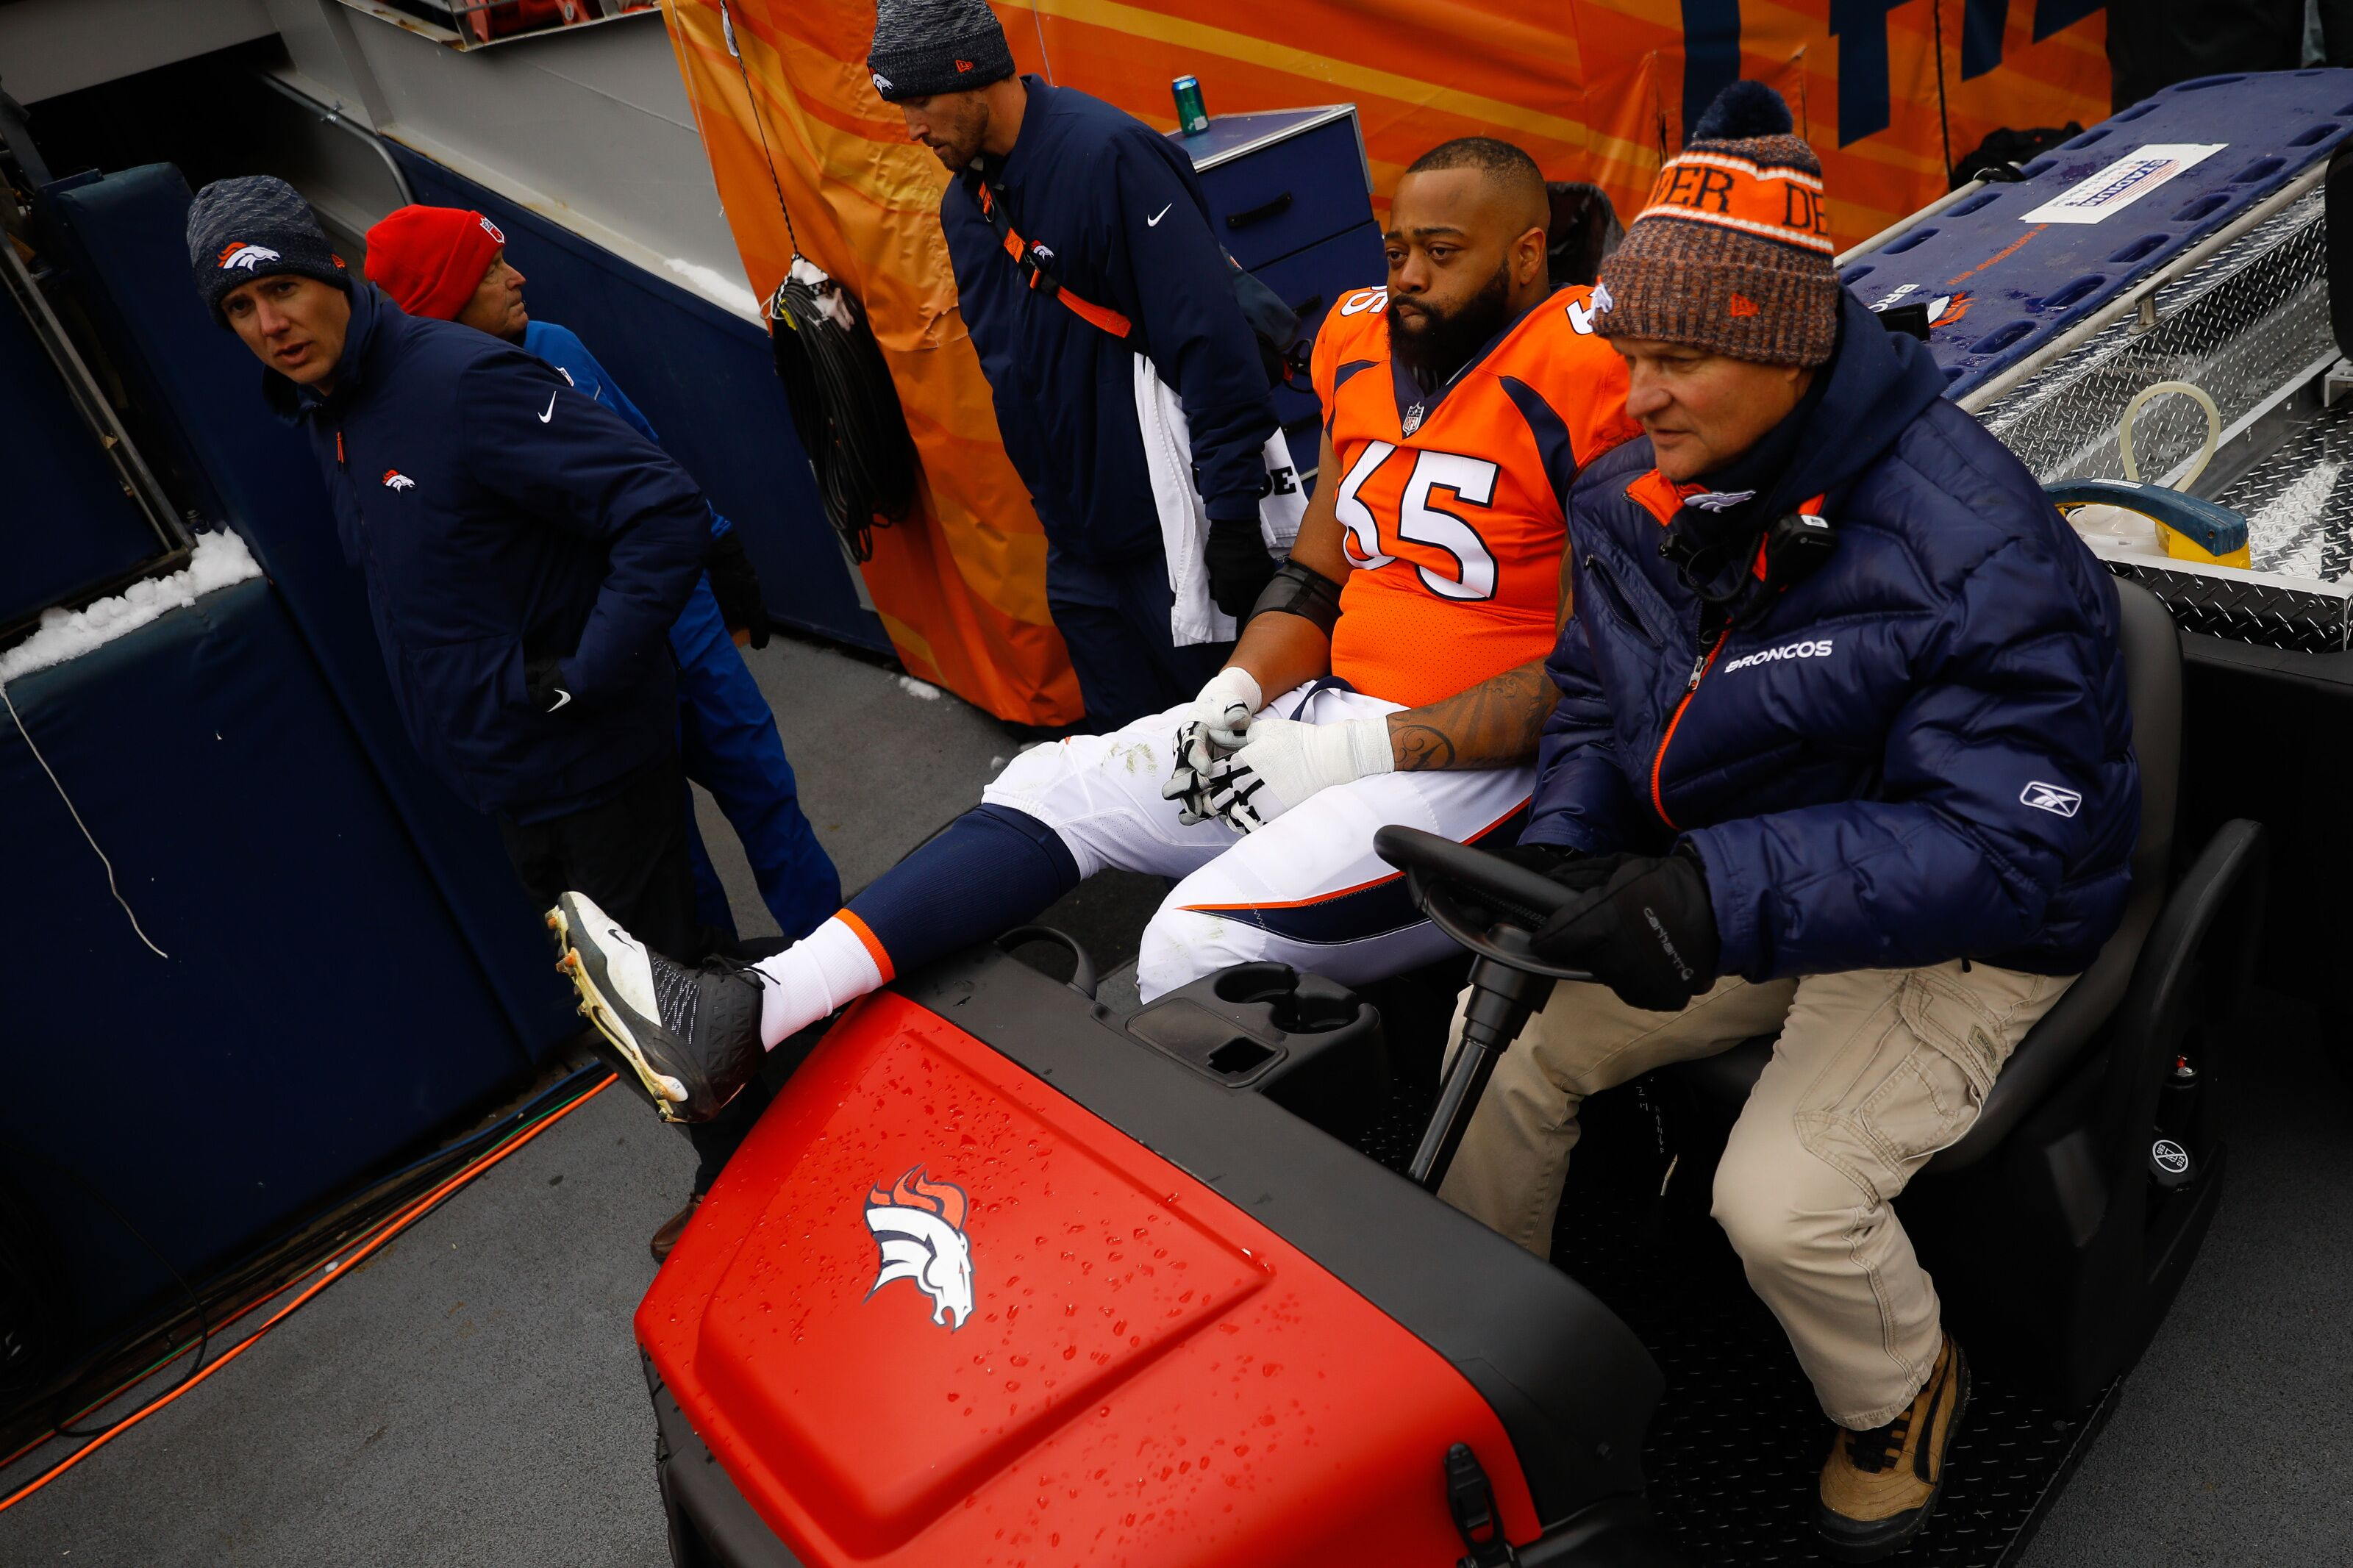 Denver Broncos: Ron Leary likely coming back in 2019